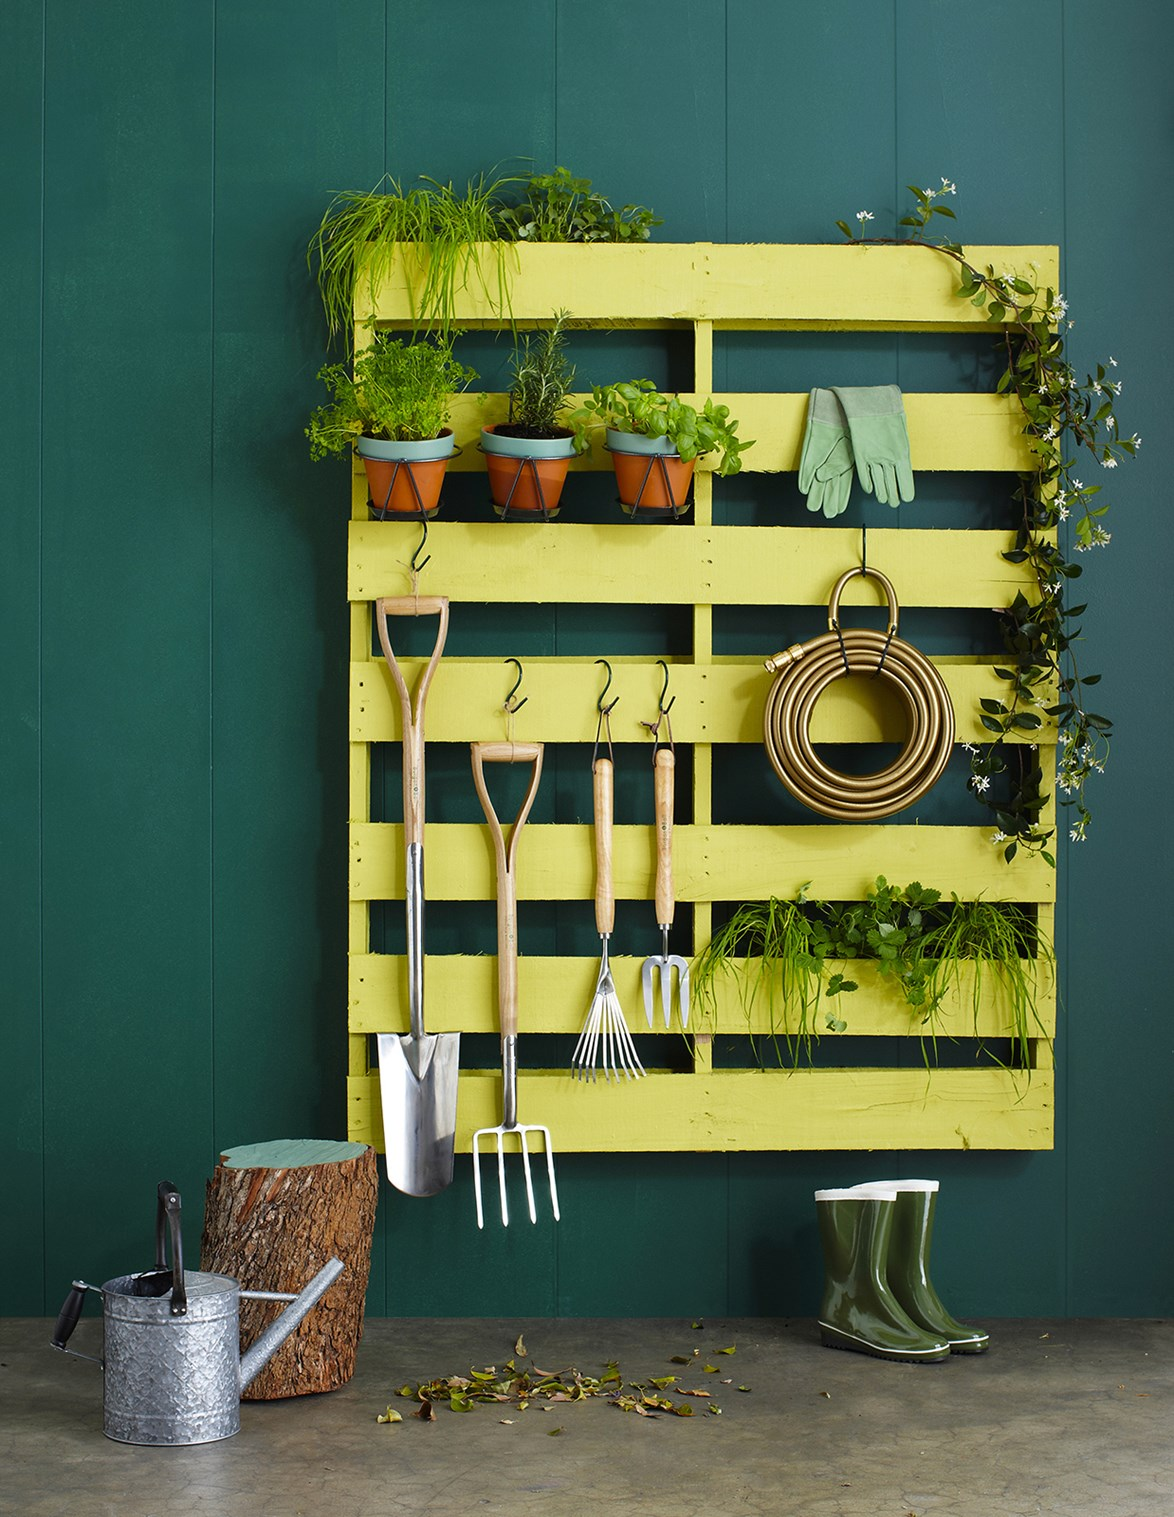 Recycle and paint an old pallet to jazz up an outdoor space. A vibrantly painted pallet is the ideal place to store garden tools and hang herbs for easy access.